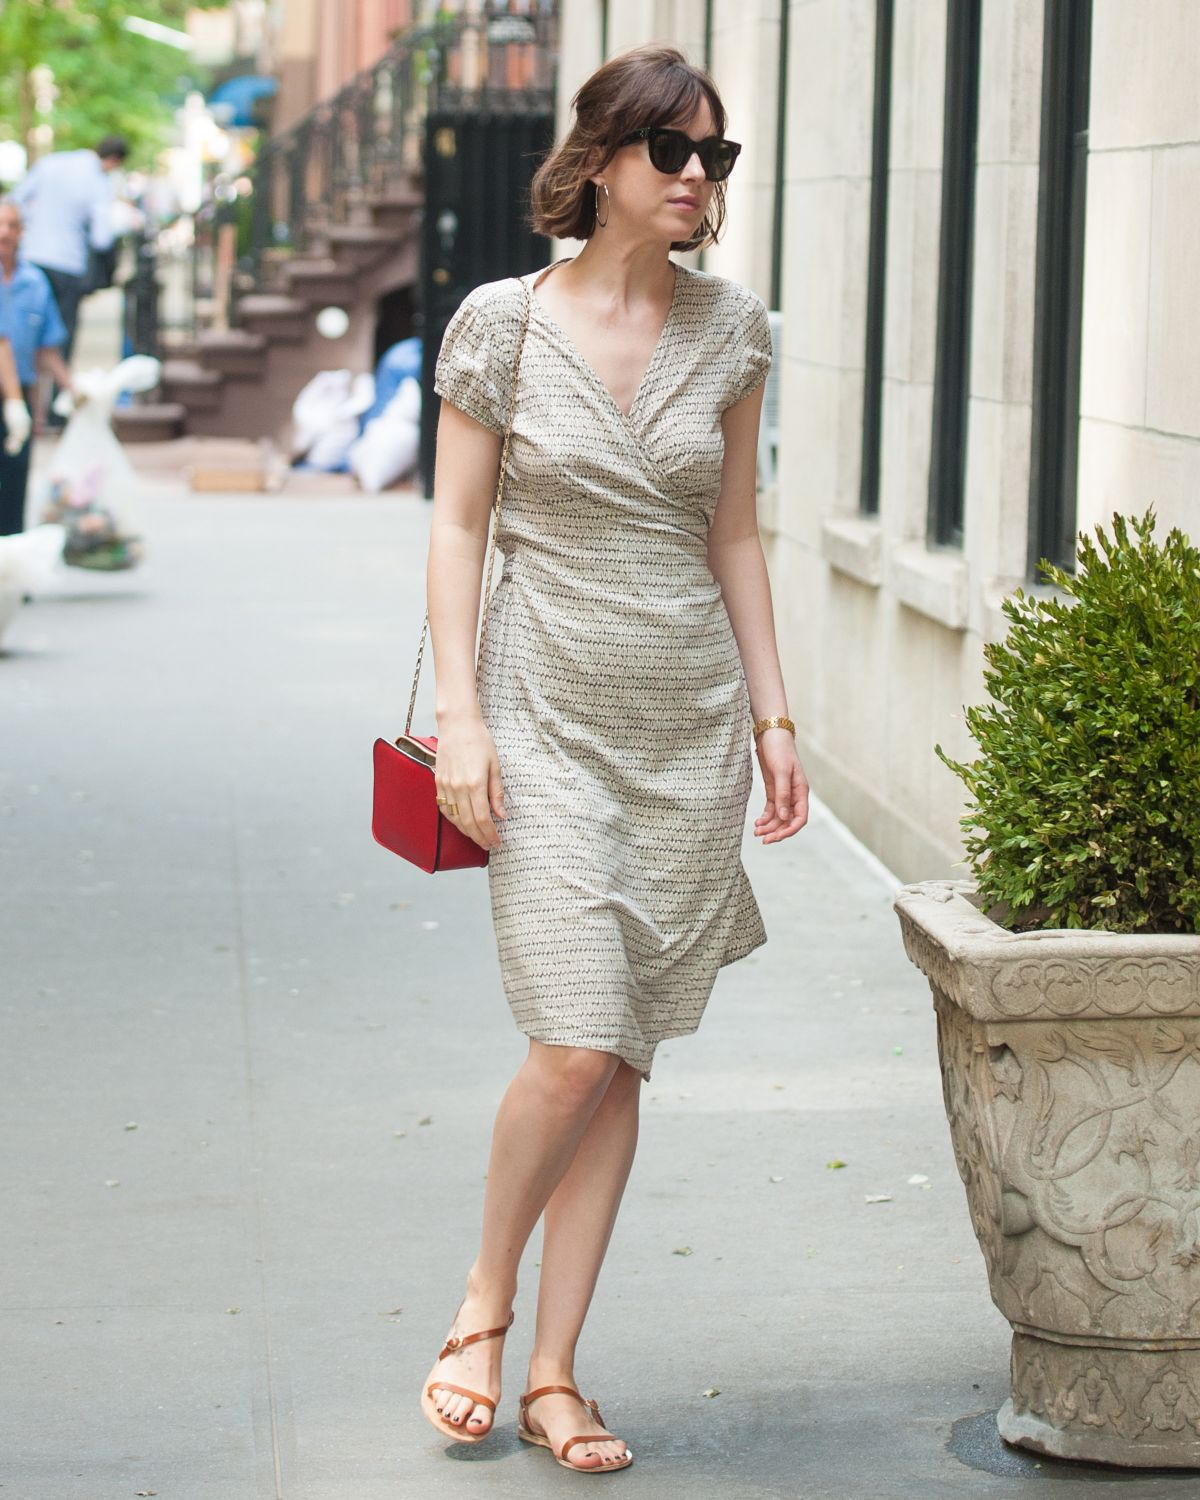 DAKOTA JOHNSON Out in New York 05/17/2015